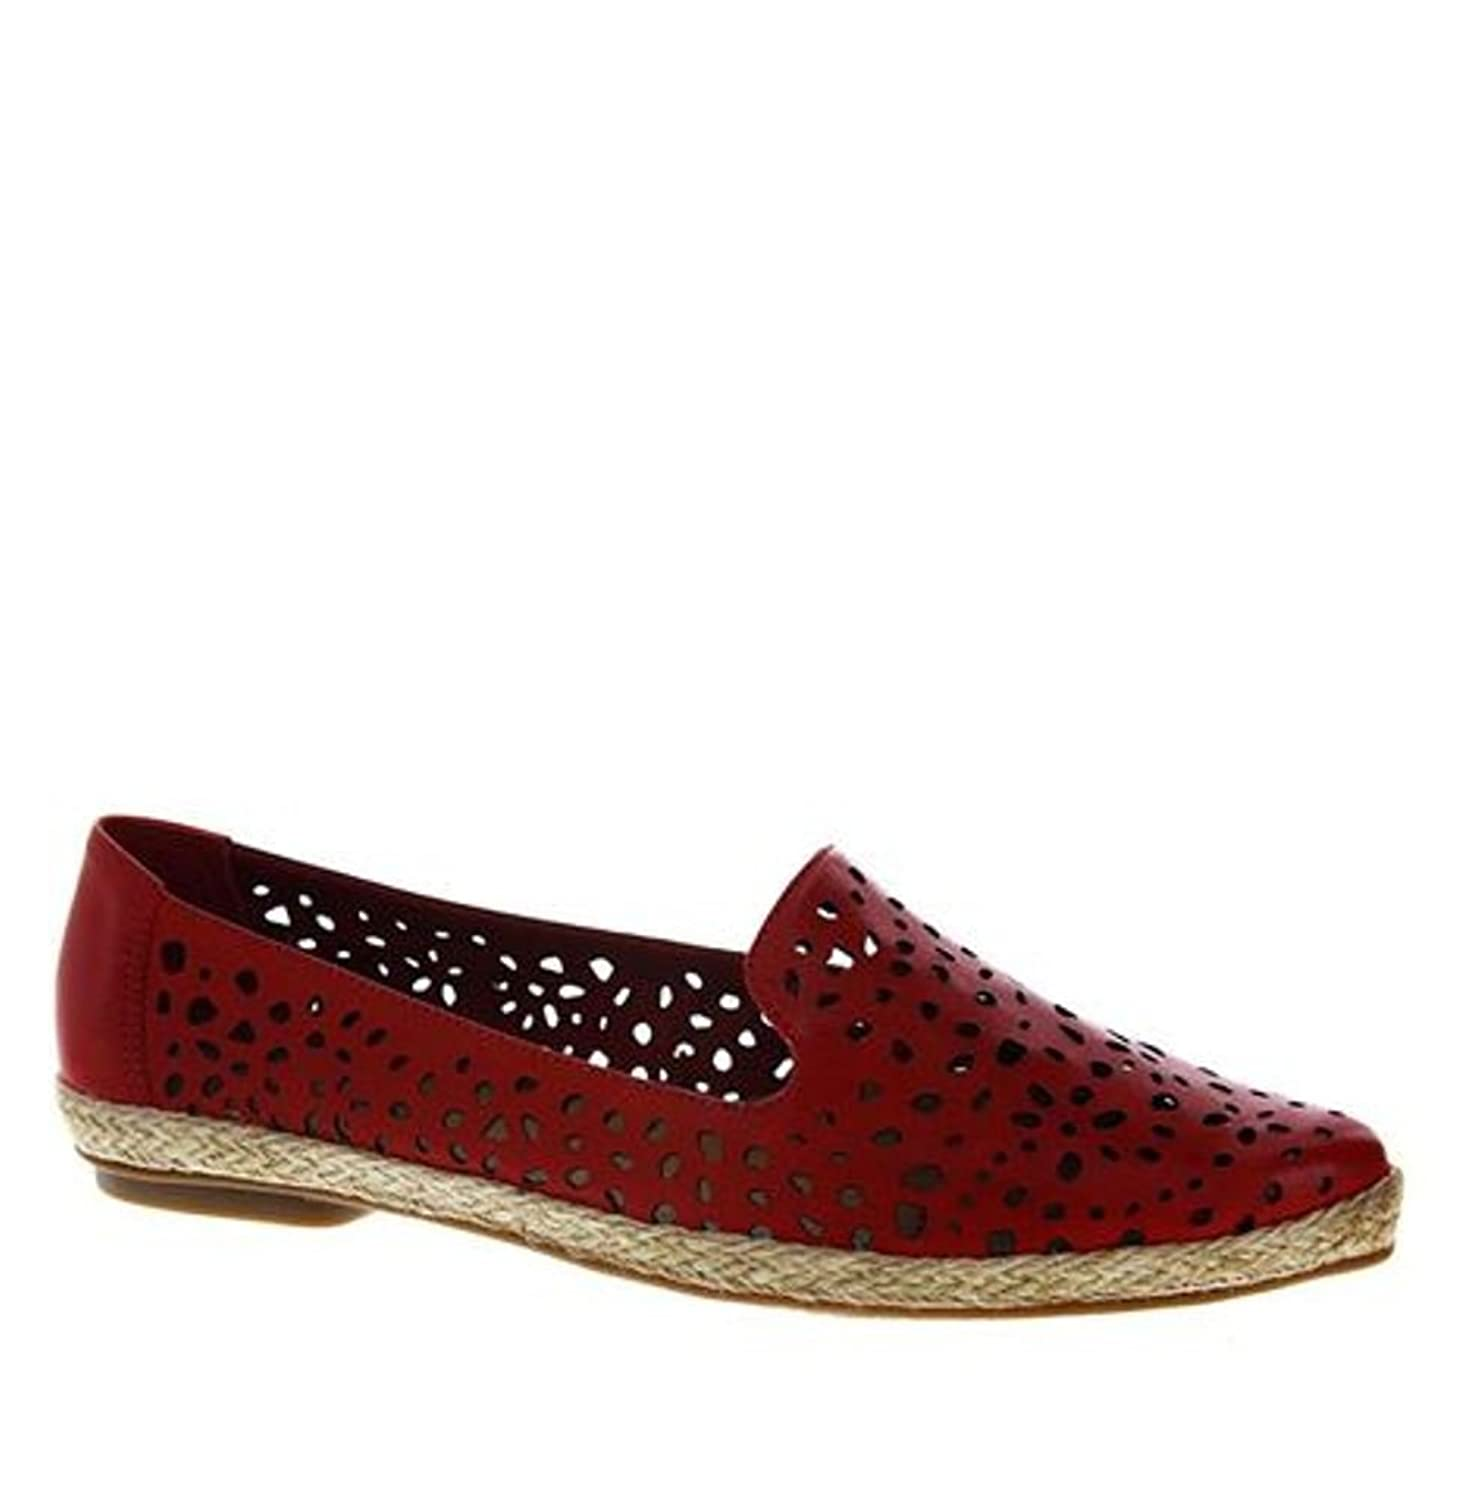 Bottero Womens Lazer Cut Leather Loafers